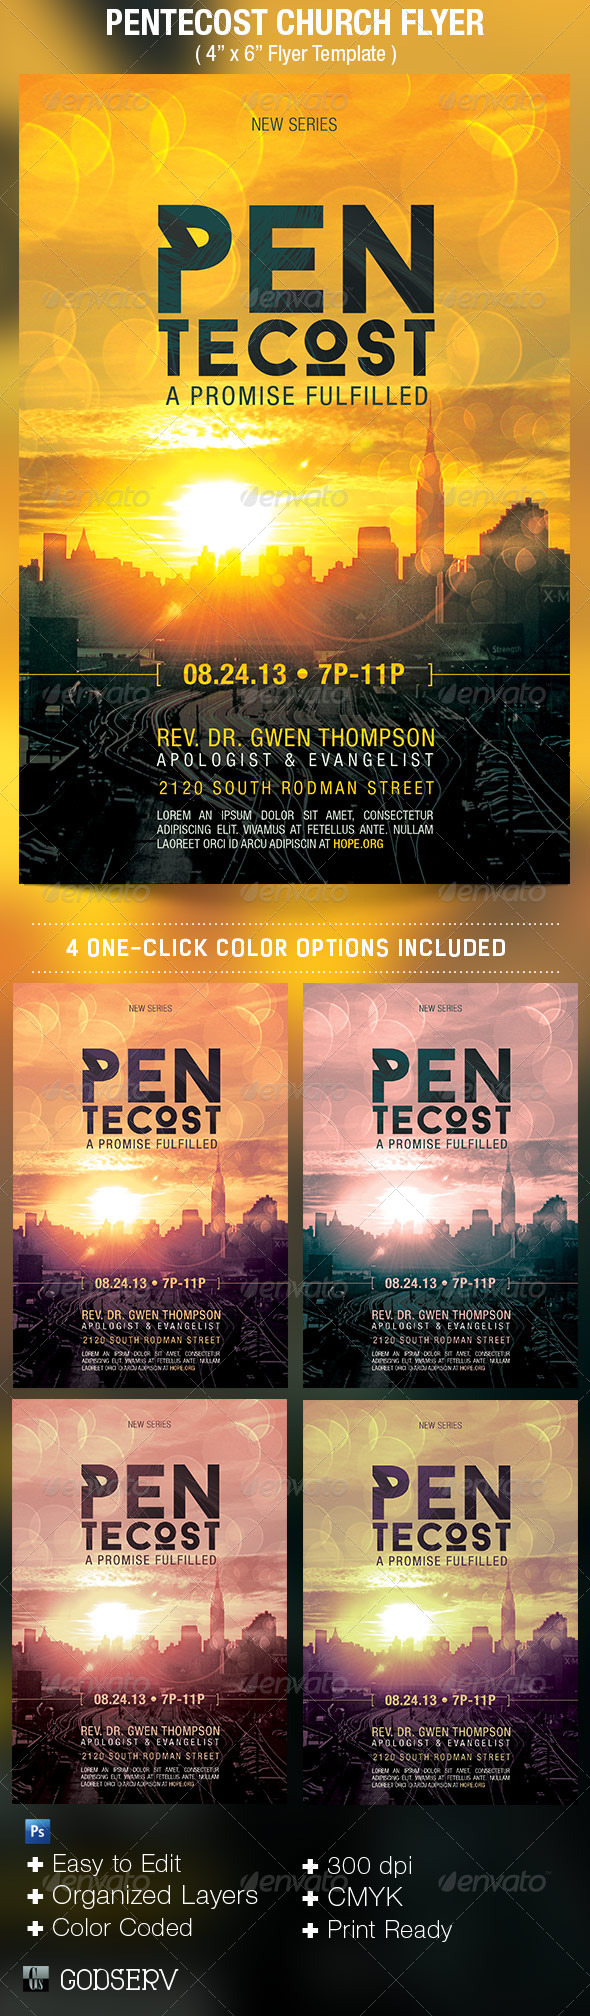 Pentecost Church Flyer Template - Church Flyers